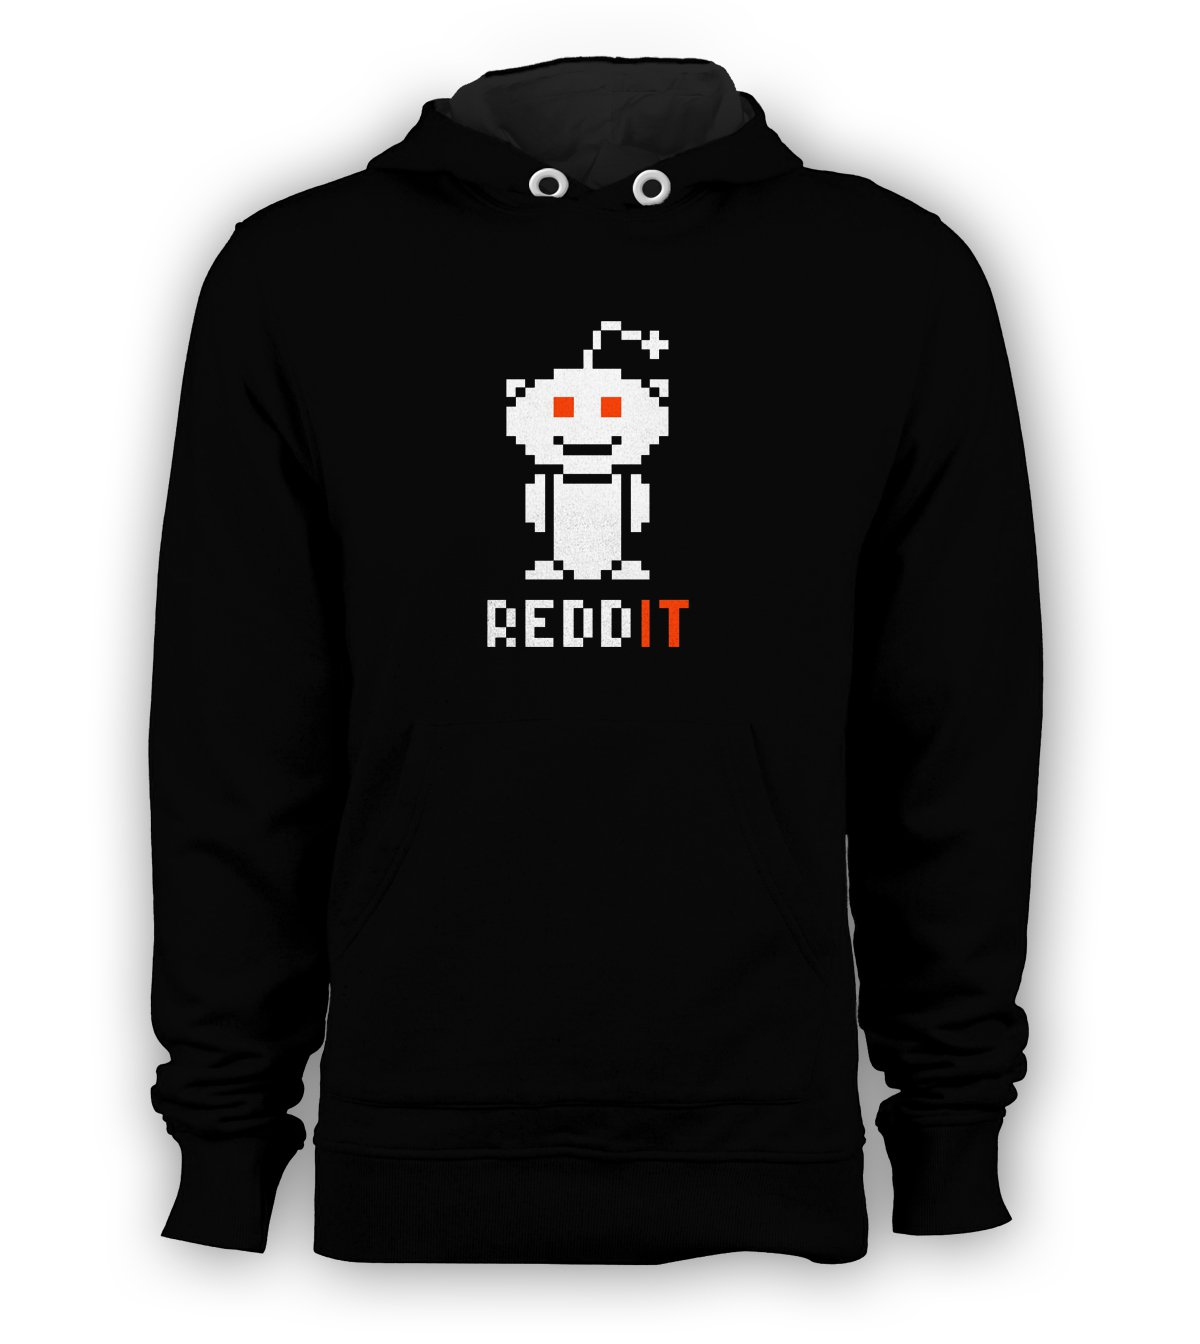 Reddit Logo Pullover Hoodie Men Sweatshirts Size S to 3XL New Black